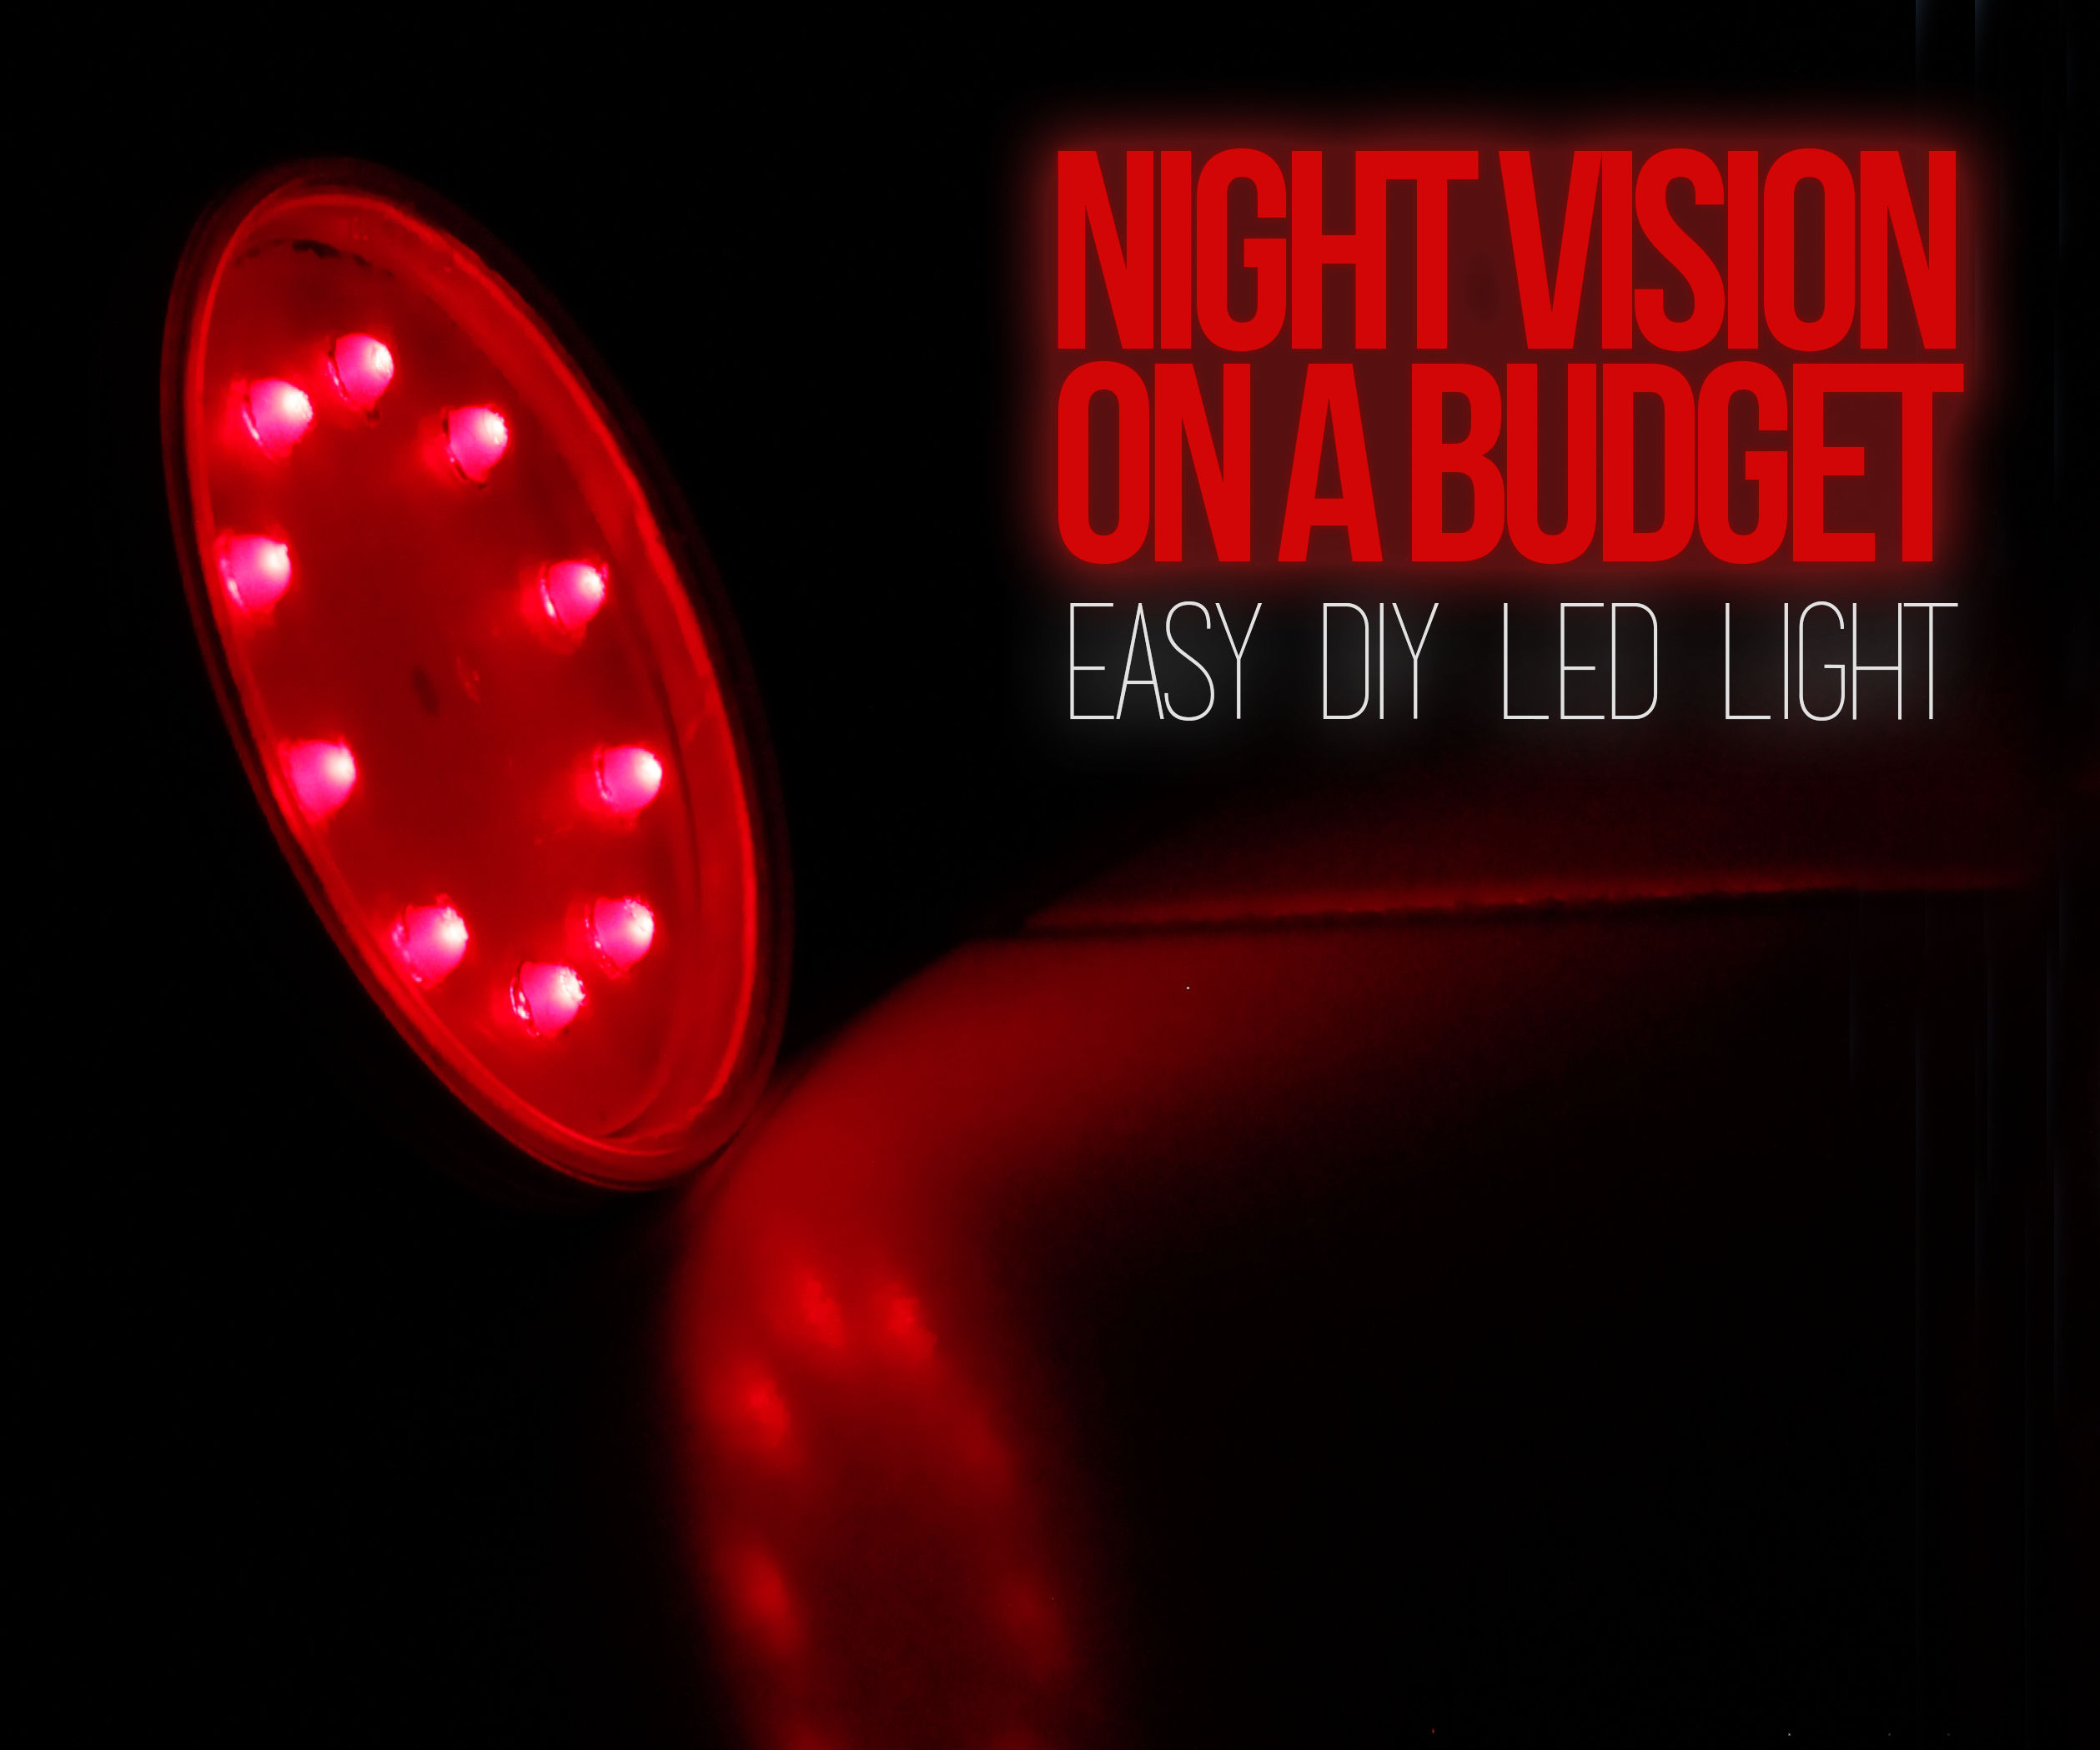 Night Vision on a Budget